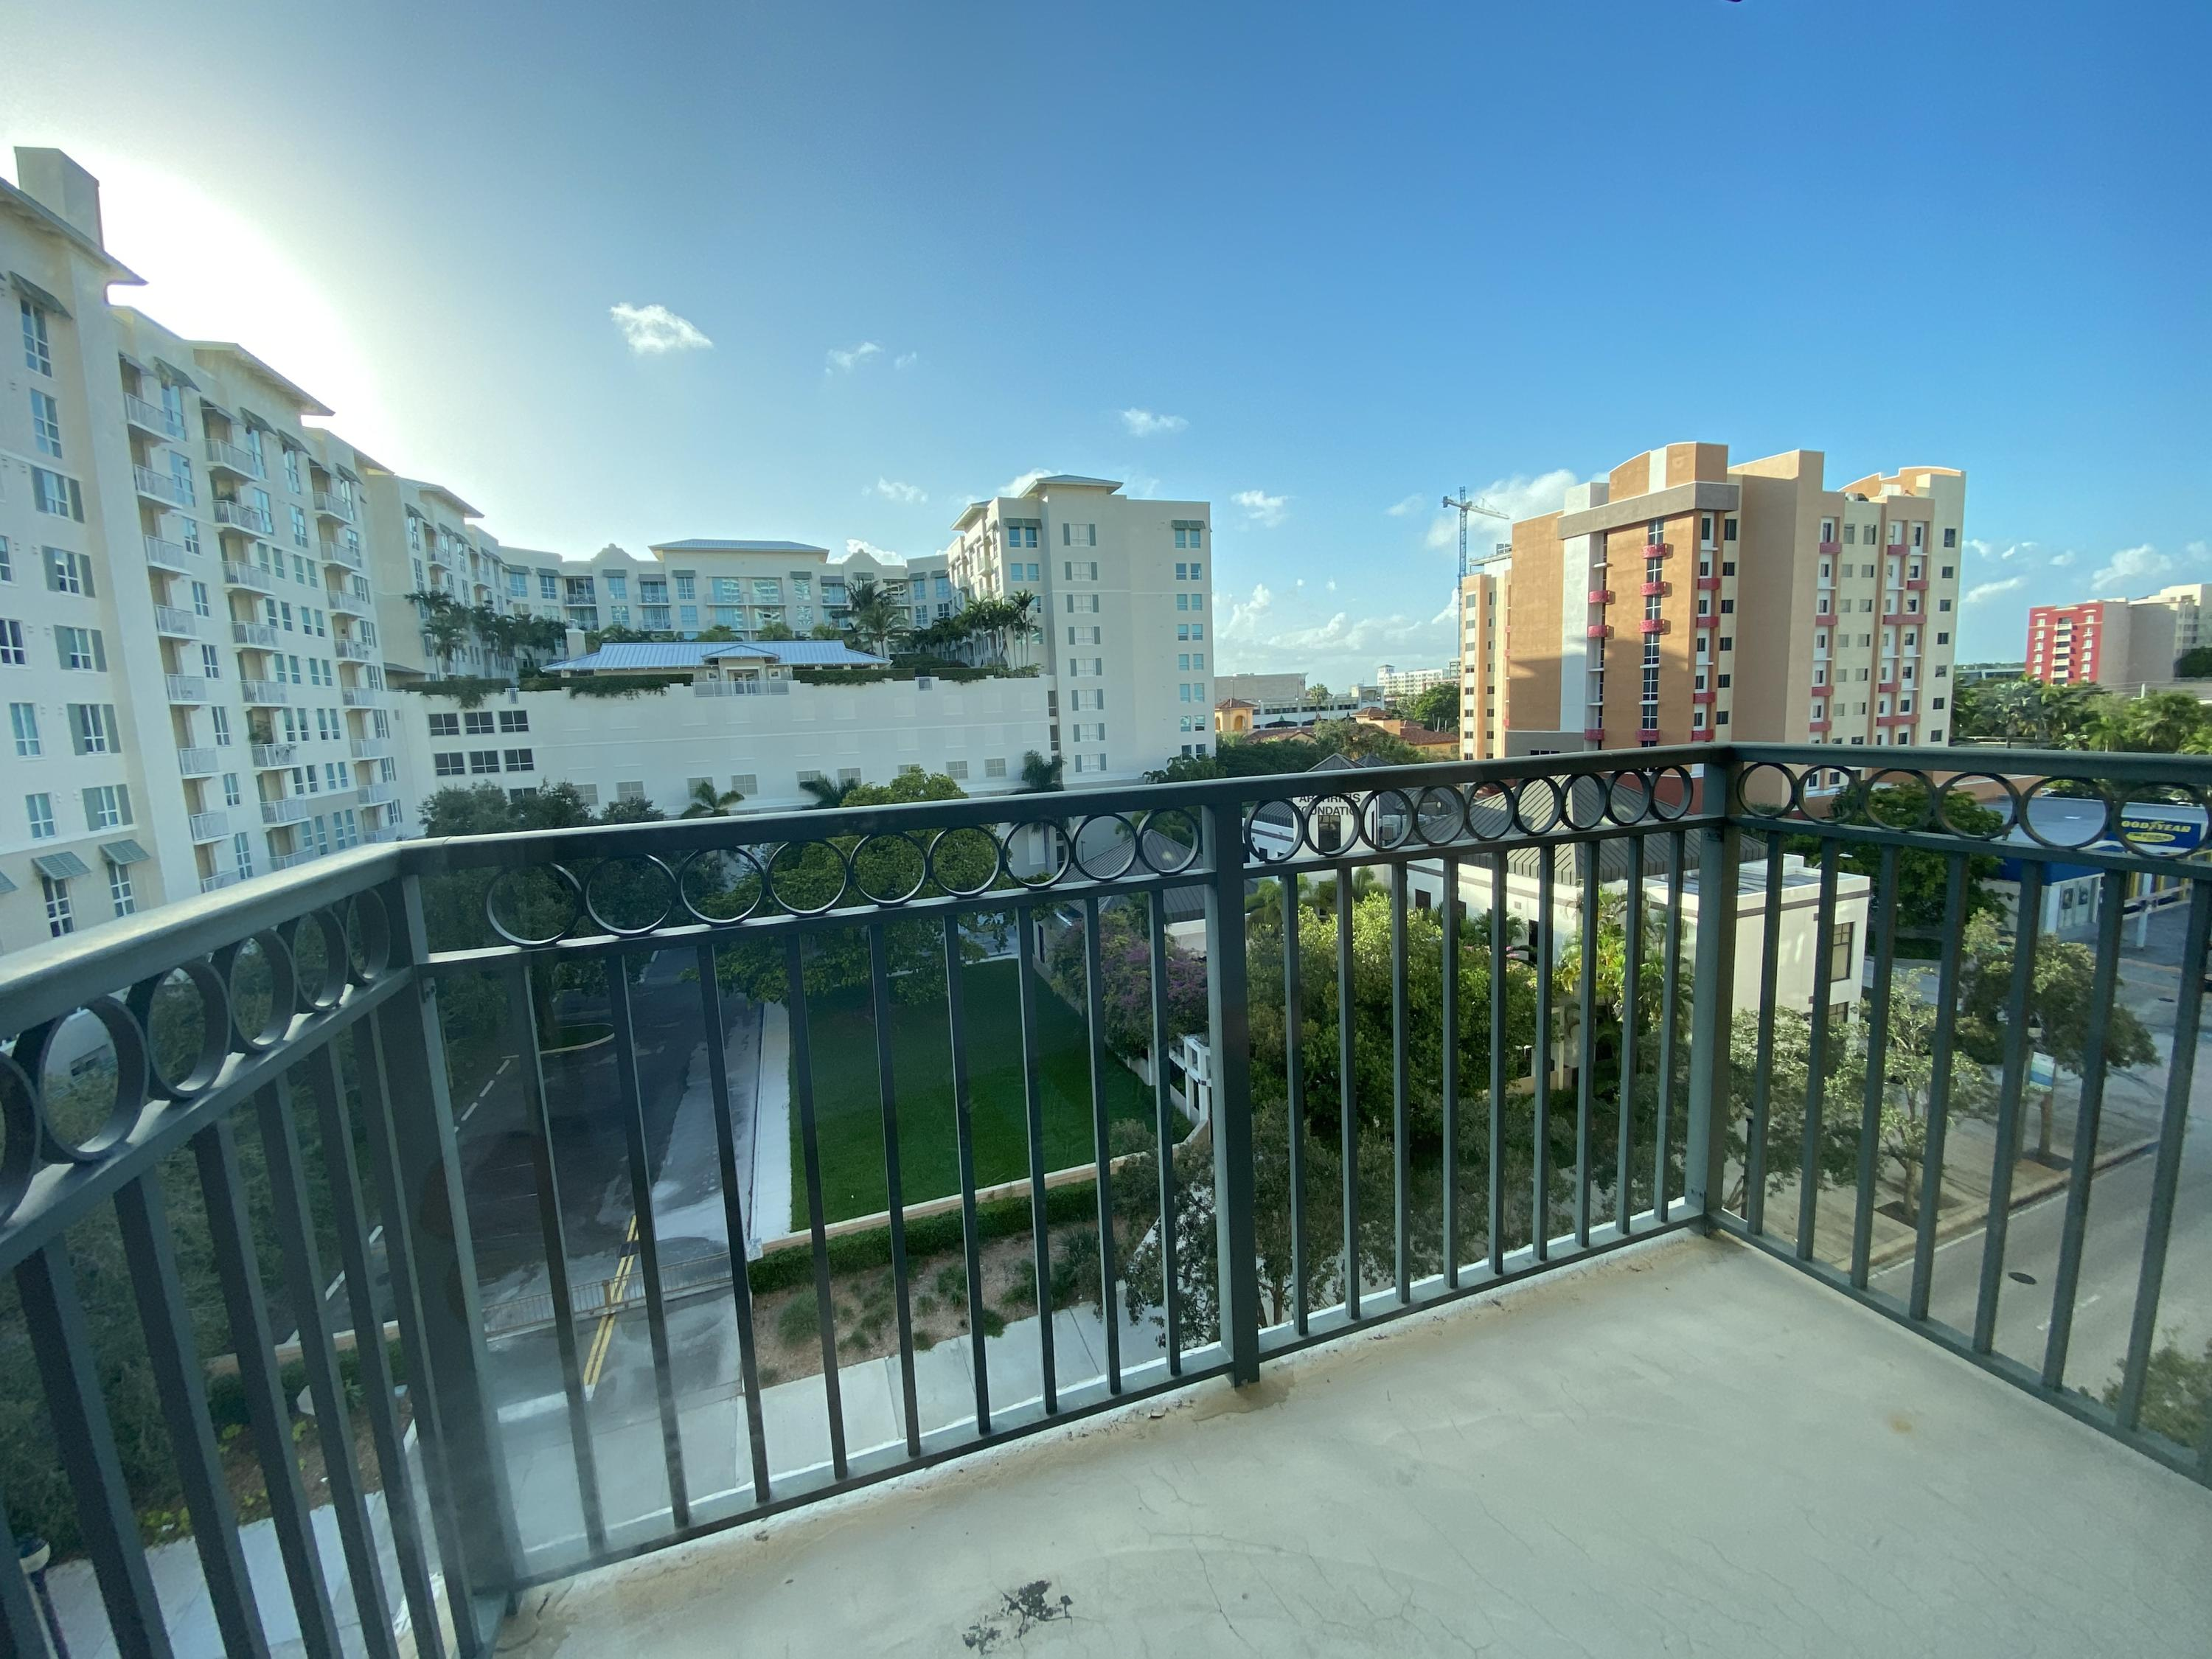 600 S Dixie Highway #625 - 33401 - FL - West Palm Beach